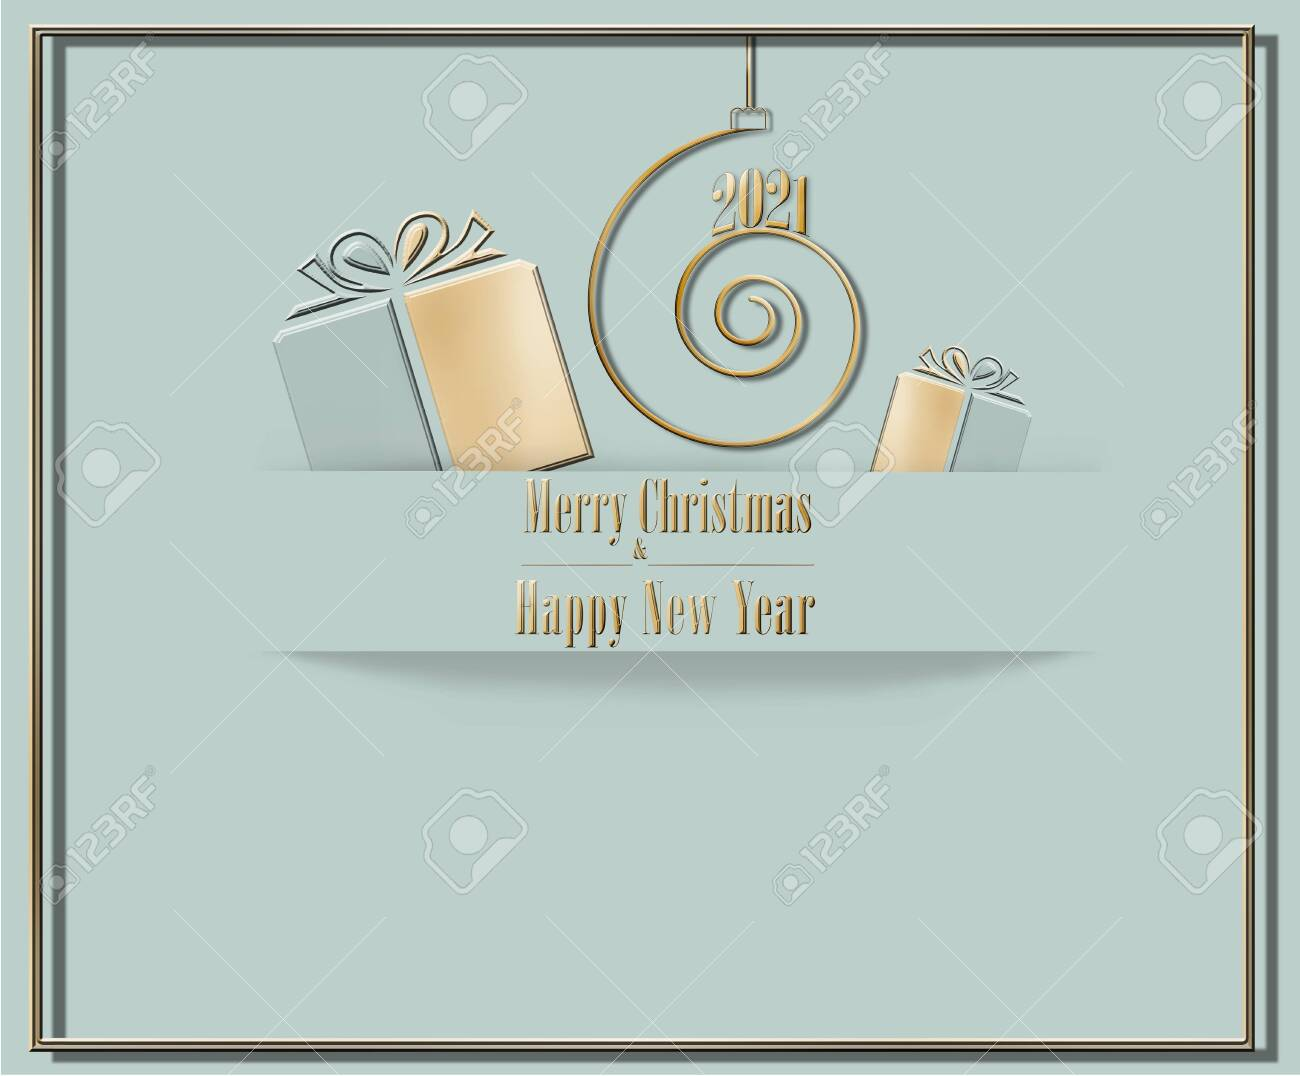 Last Day To Mail Christmas Cards 2021 Elegant Luxury 2021 Merry Christmas Happy New Year Card In Pastel Stock Photo Picture And Royalty Free Image Image 150786197